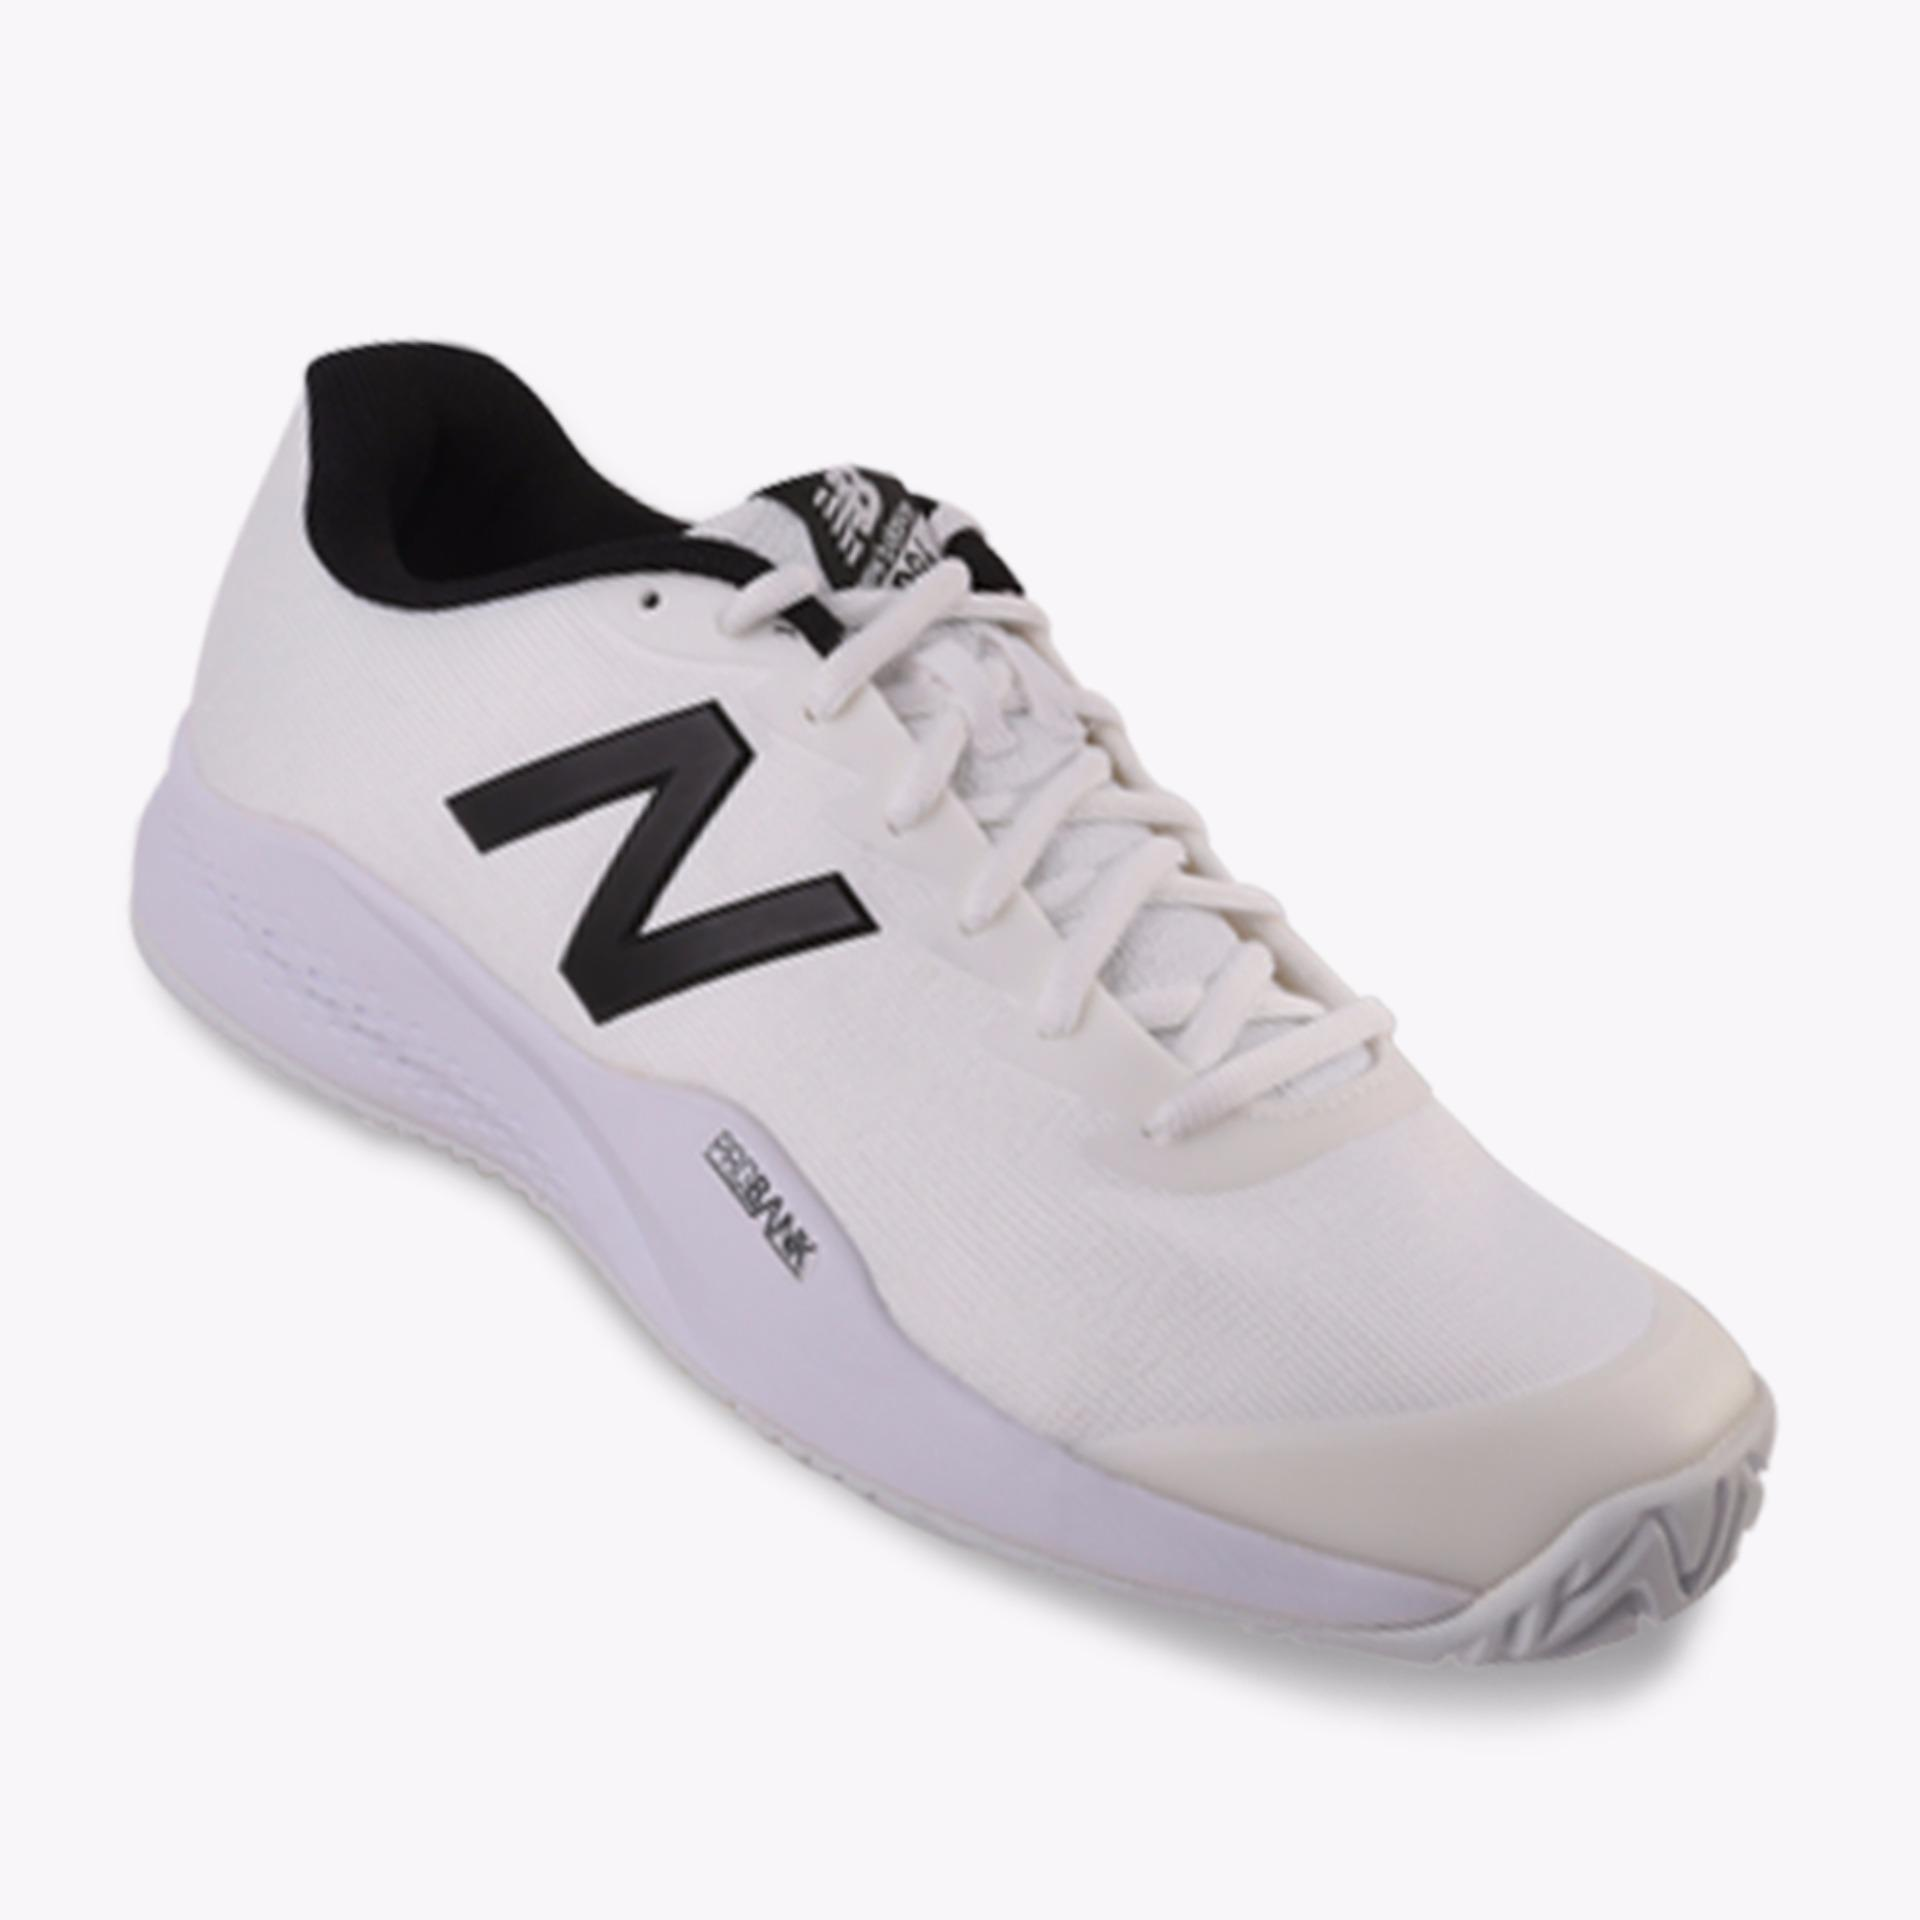 Spesifikasi New Balance 996V3 Men S Tennis Shoes Putih Dan Harganya